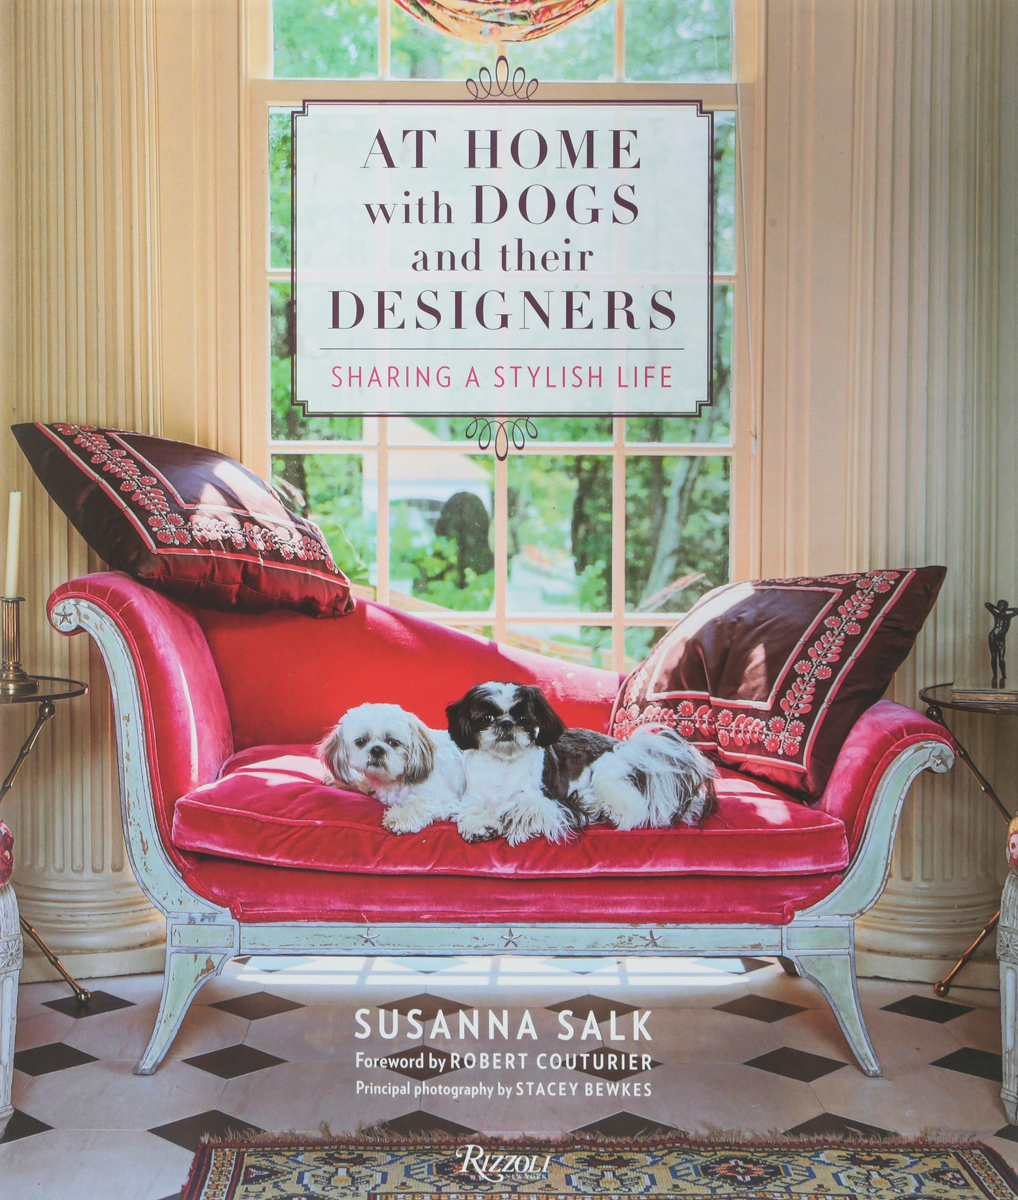 At Home with Dogs and Their Designers: Sharing a Stylish Life seeing things as they are